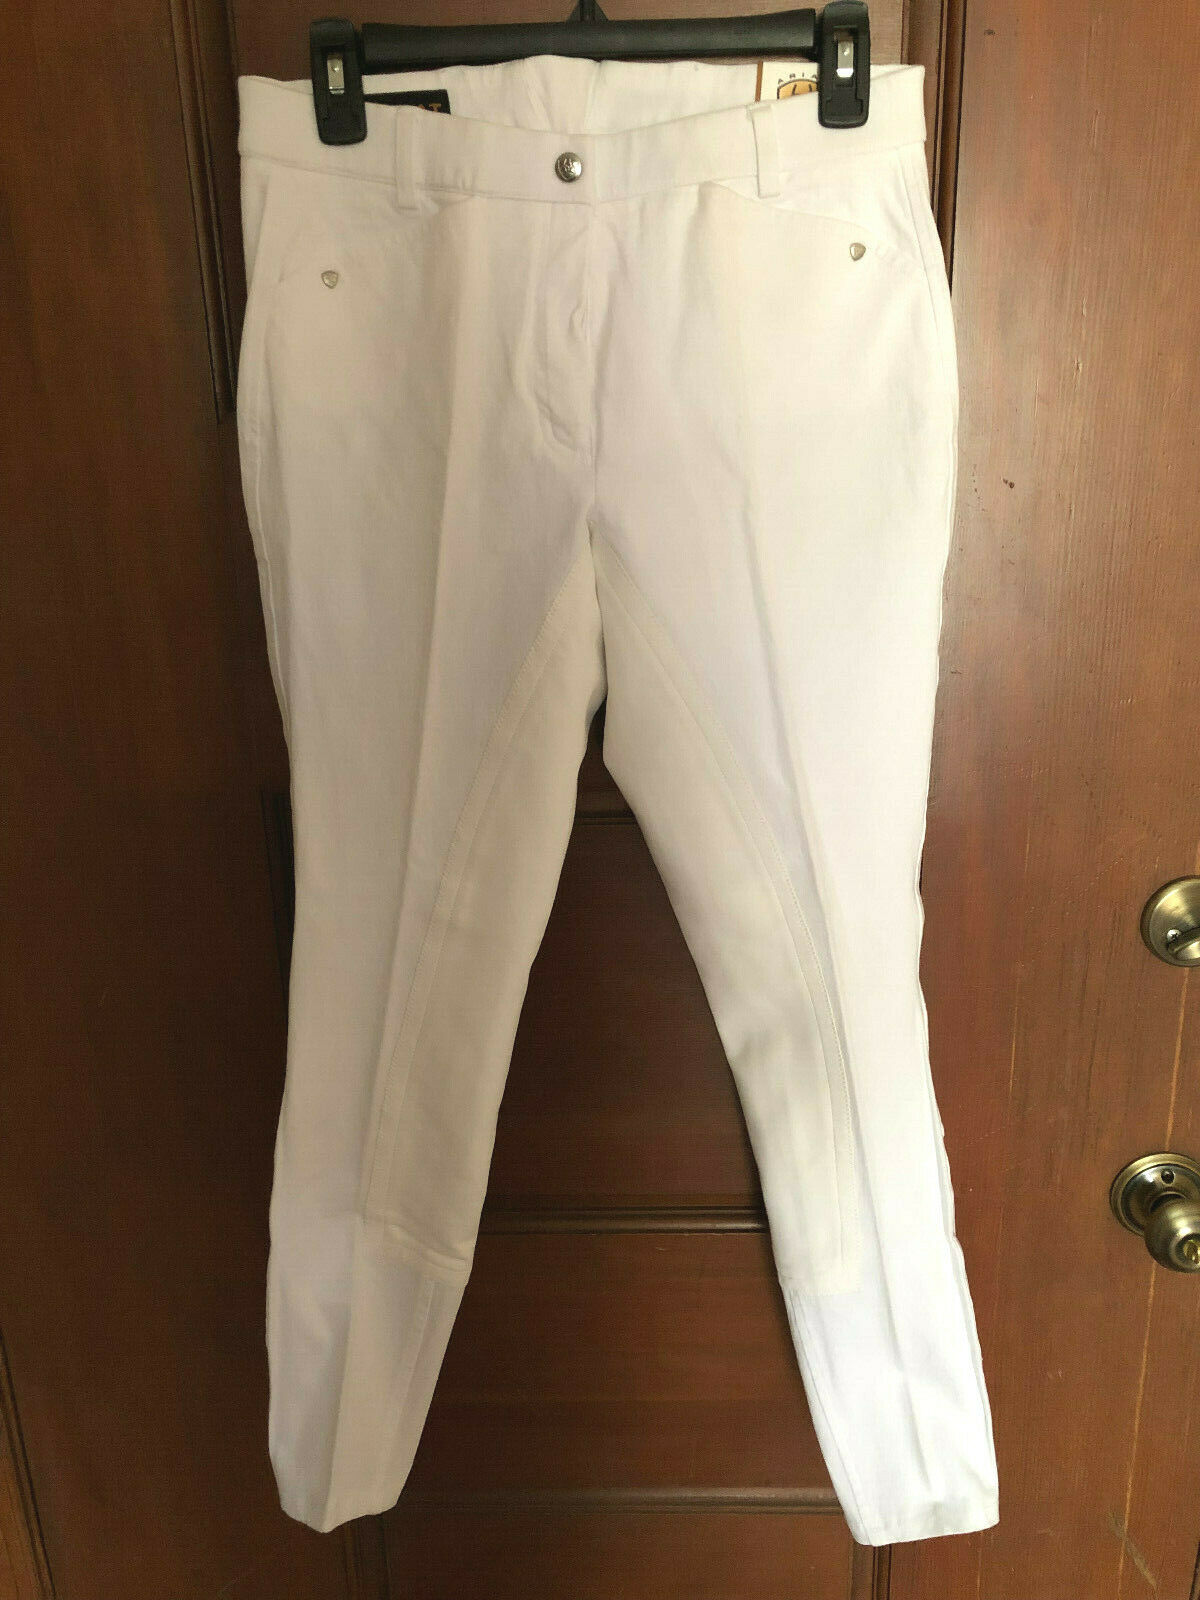 NWT  110 24 Long Ariat Heritage Full Seat White Breeches Jods Riding Pants 31  W